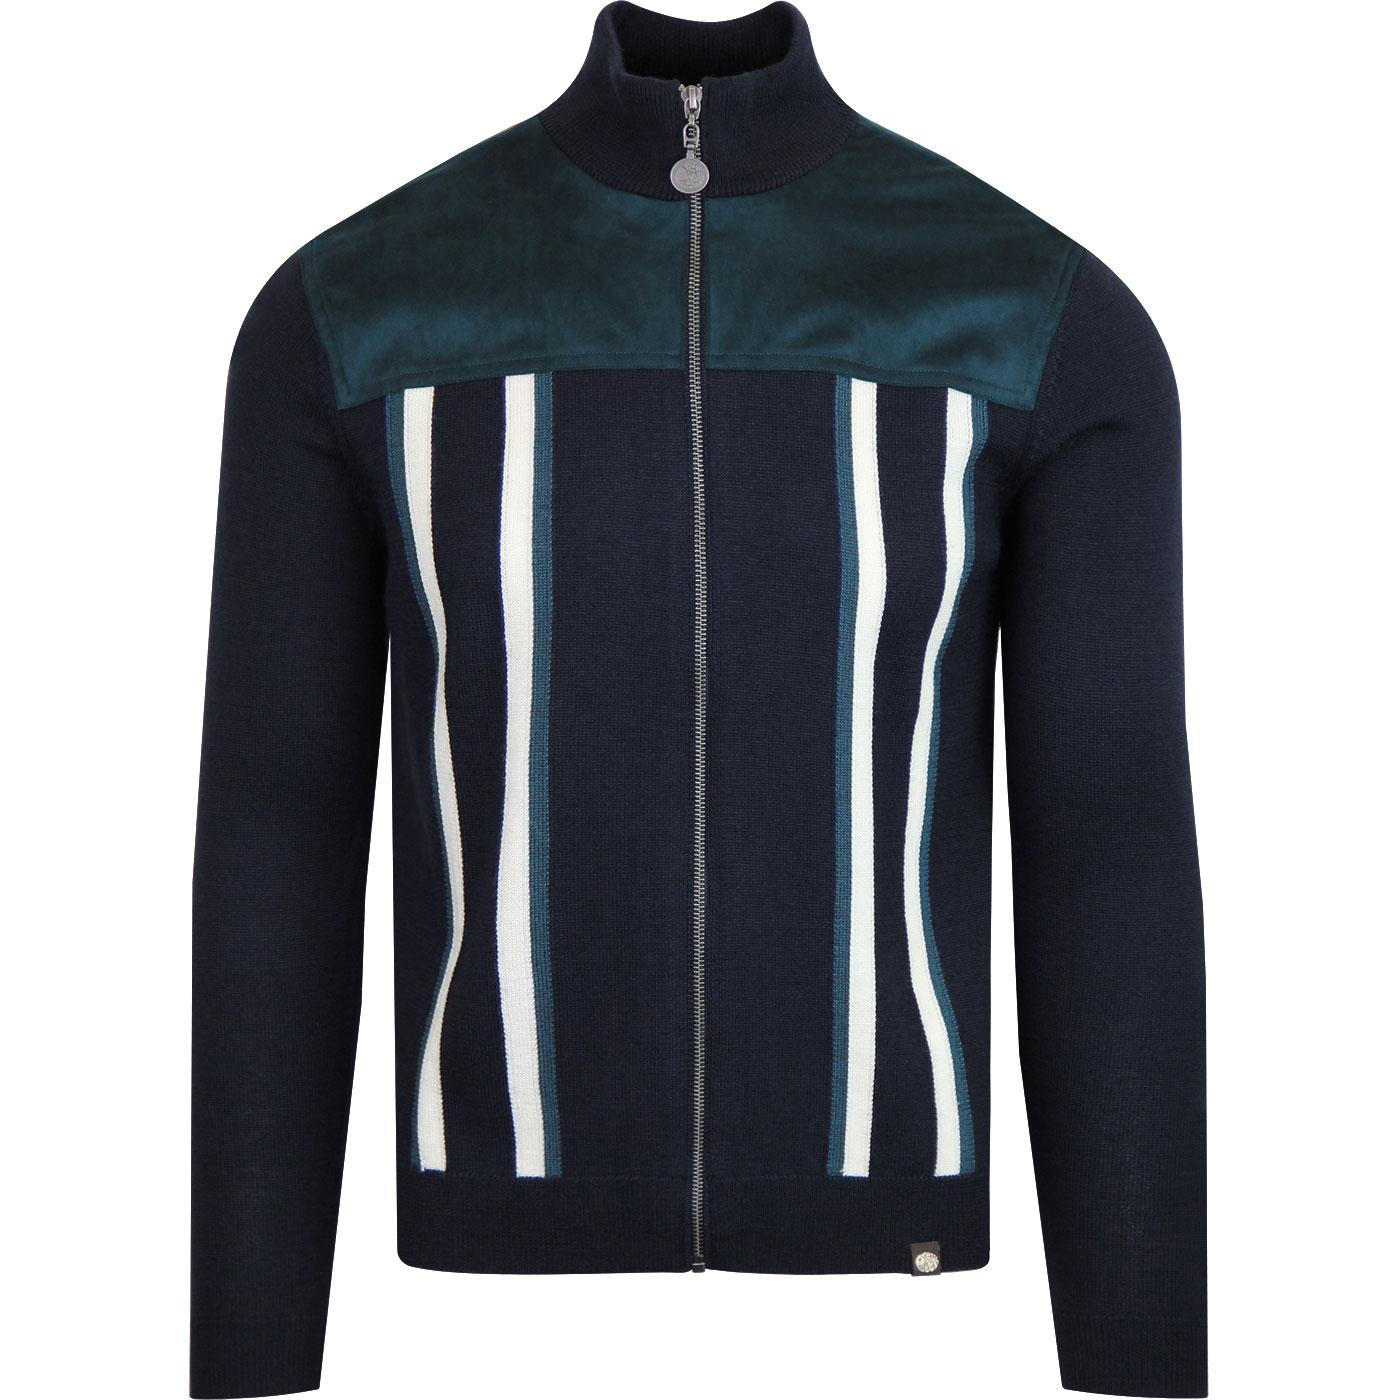 PRETTY GREEN Retro Zip Through Knitted Track Top